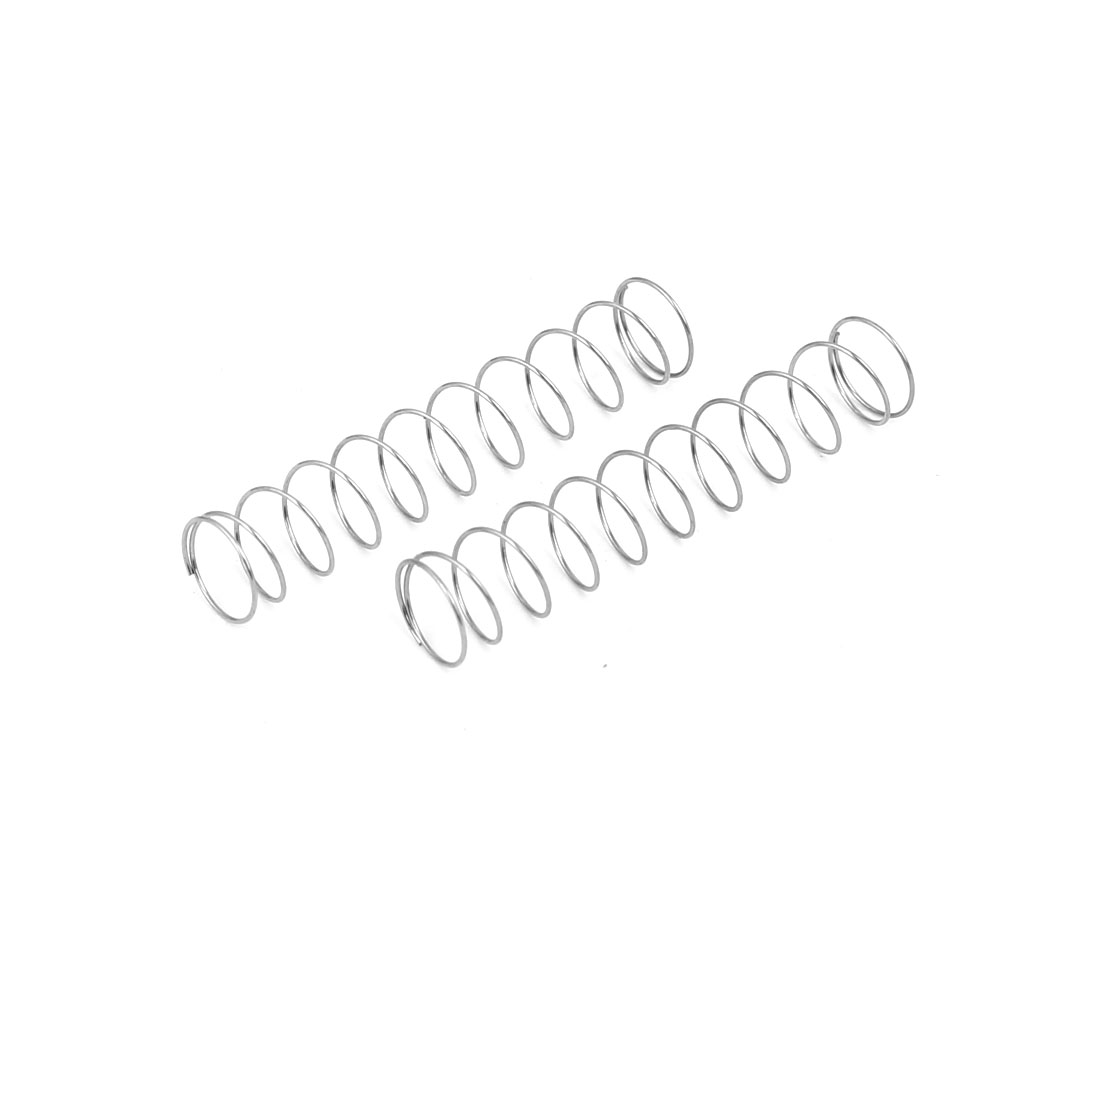 0.3mmx6mmx30mm 304 Stainless Steel Compression Springs 10pcs - image 2 of 3